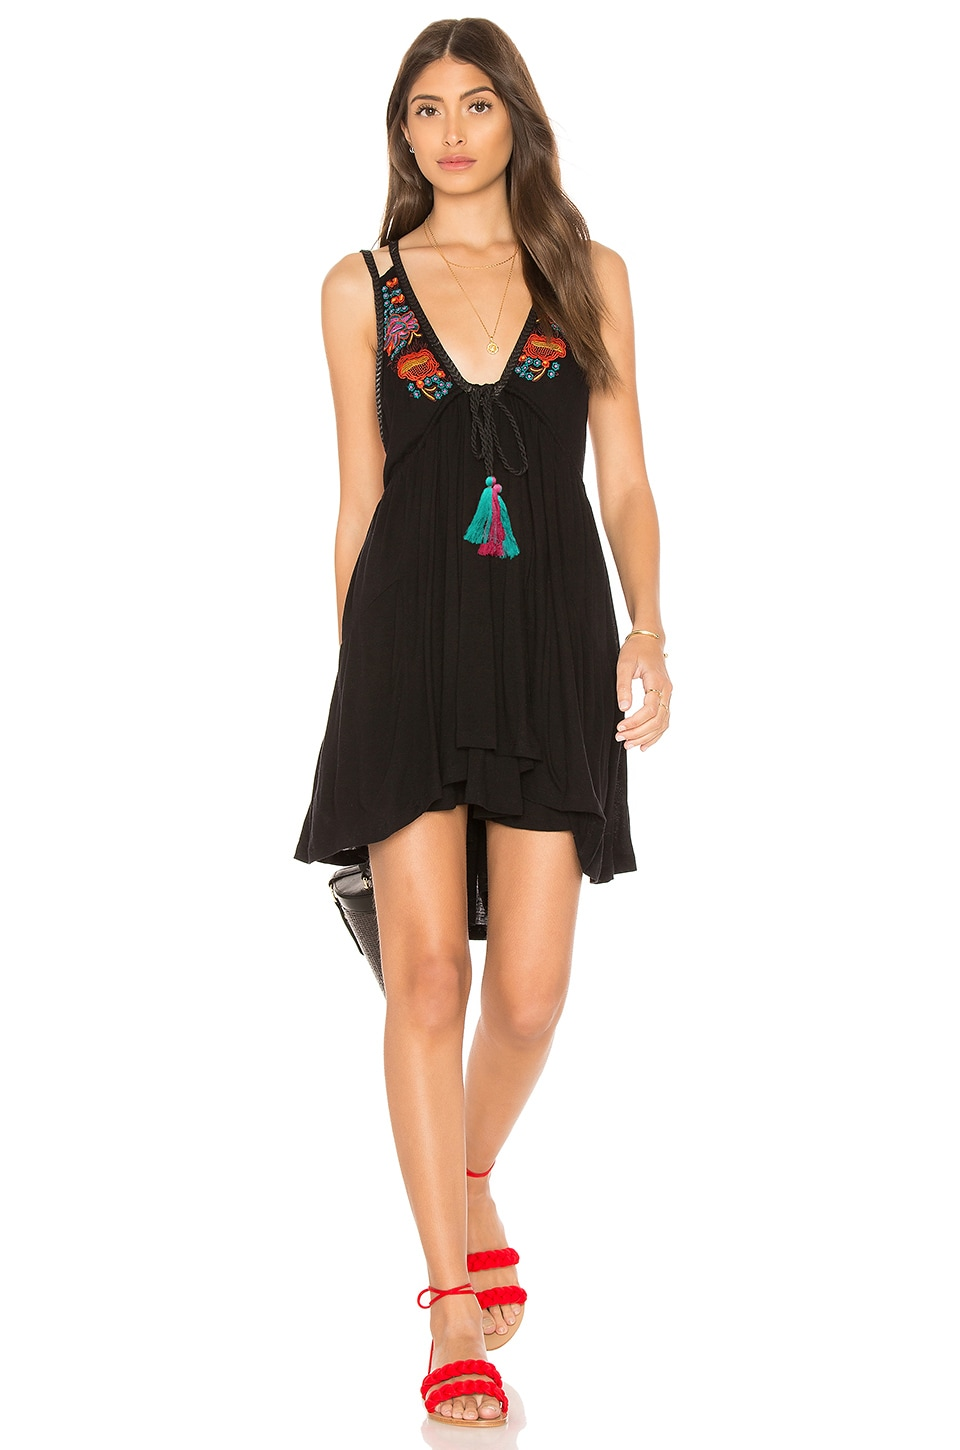 Lovers Cove Mini Dress by Free People